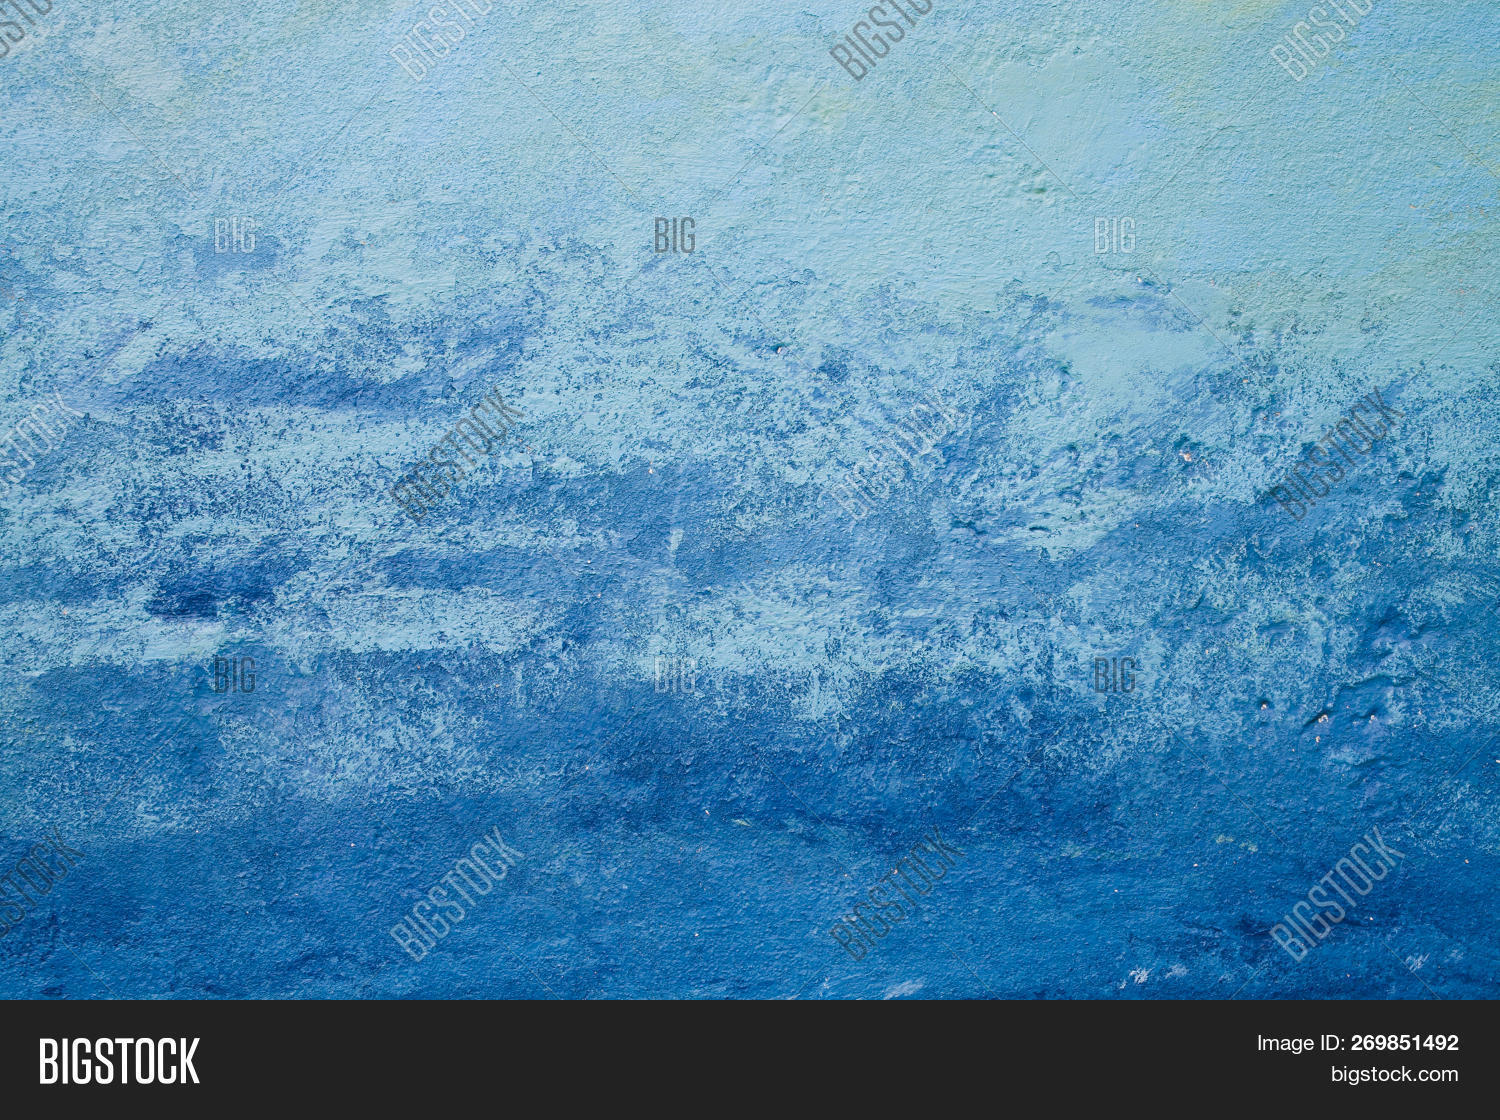 Abstract Blue Texture Image Photo Free Trial Bigstock